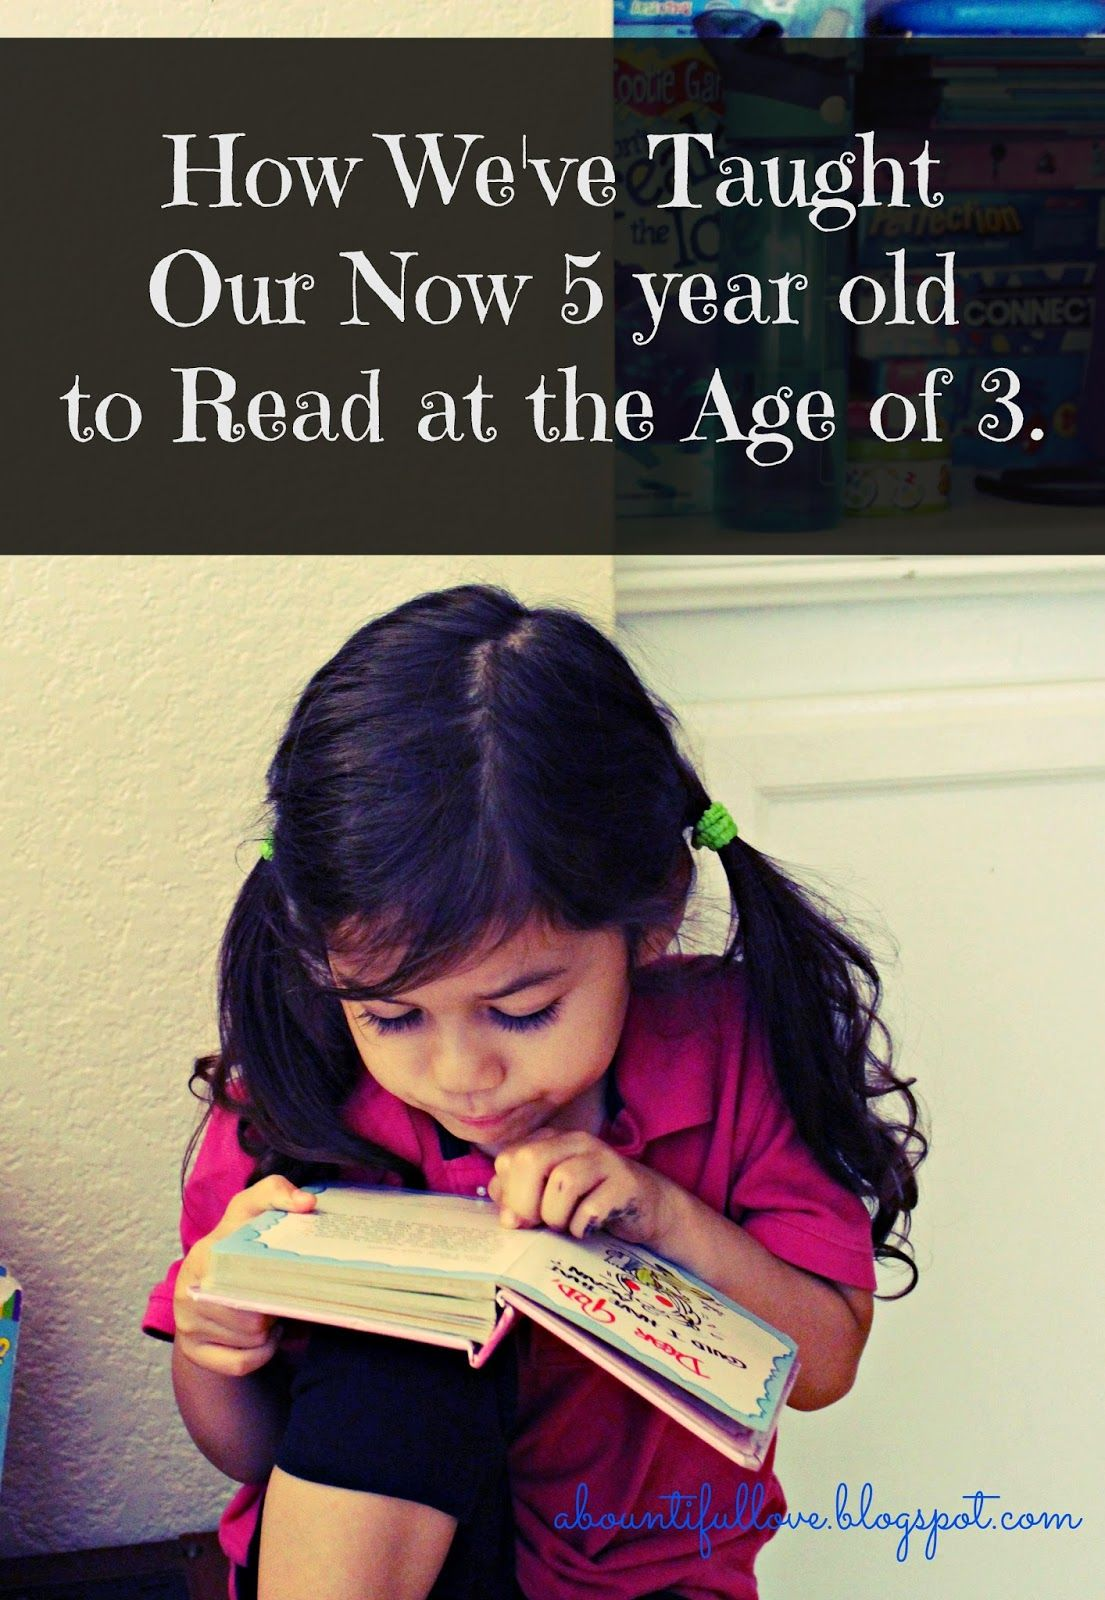 How We Ve Taught Our Now 5 Year Old To Read At The Age Of 3 Activities For 5 Year Olds Activities For 6 Year Olds 3 Year Old Activities How to teach reading to year olds